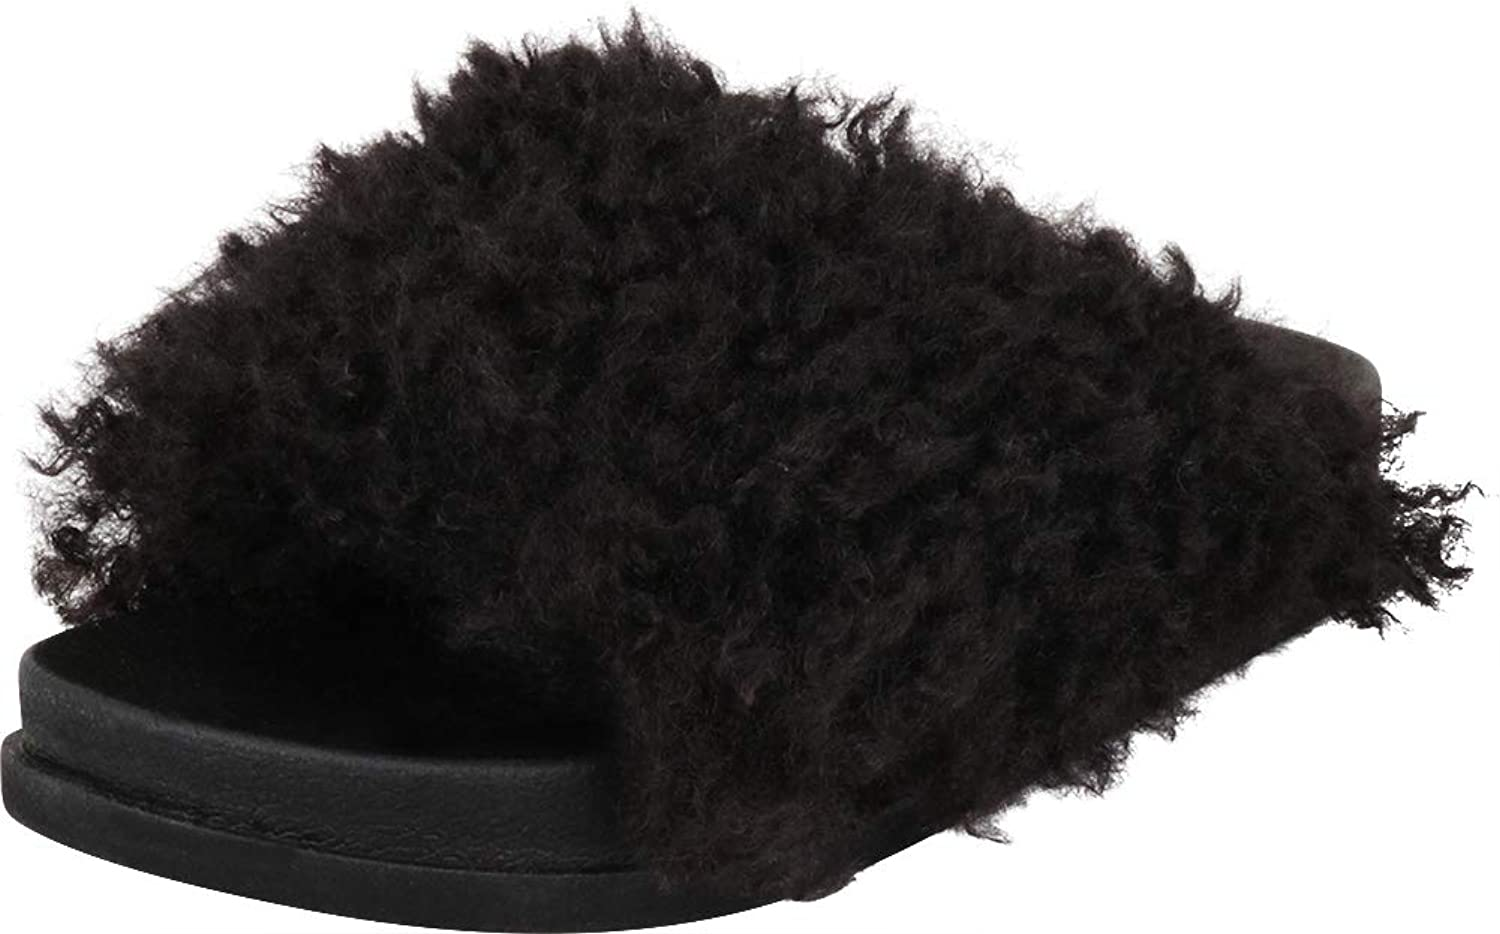 Cambridge Select Women's Open Toe Slip-On Flat Faux Fur Slide Sandal